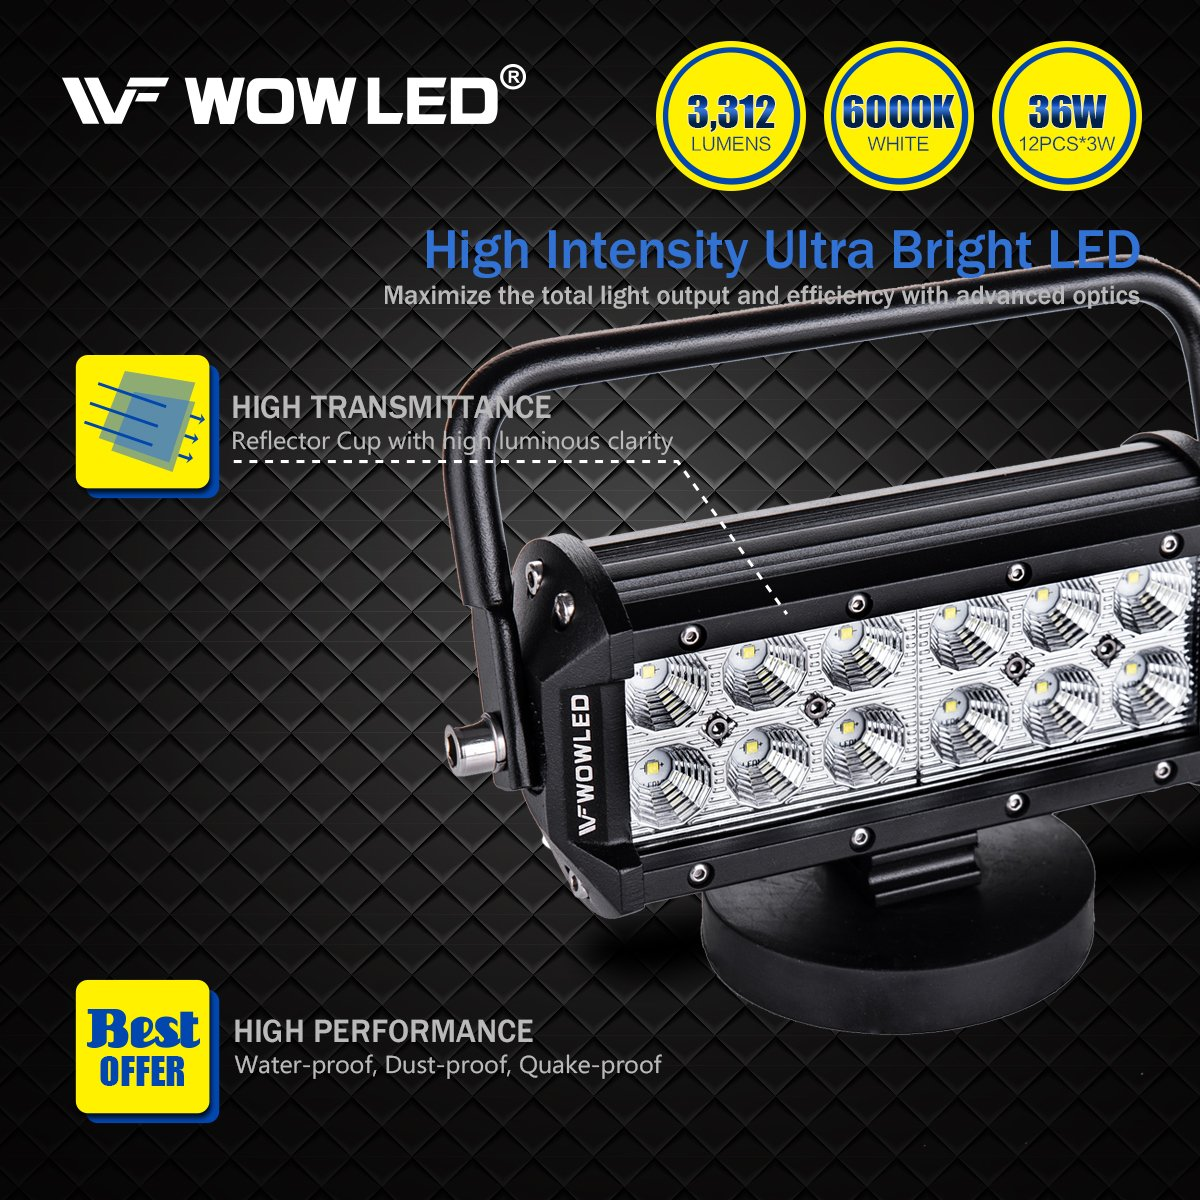 Engineering Vehicle Tractor Maintenance Off-Road Truck Boat WOWLED 27W Portable LED Work Light Flood Lamp with Magnetic Base for Car Camping Light DC 9-32V /… Truck